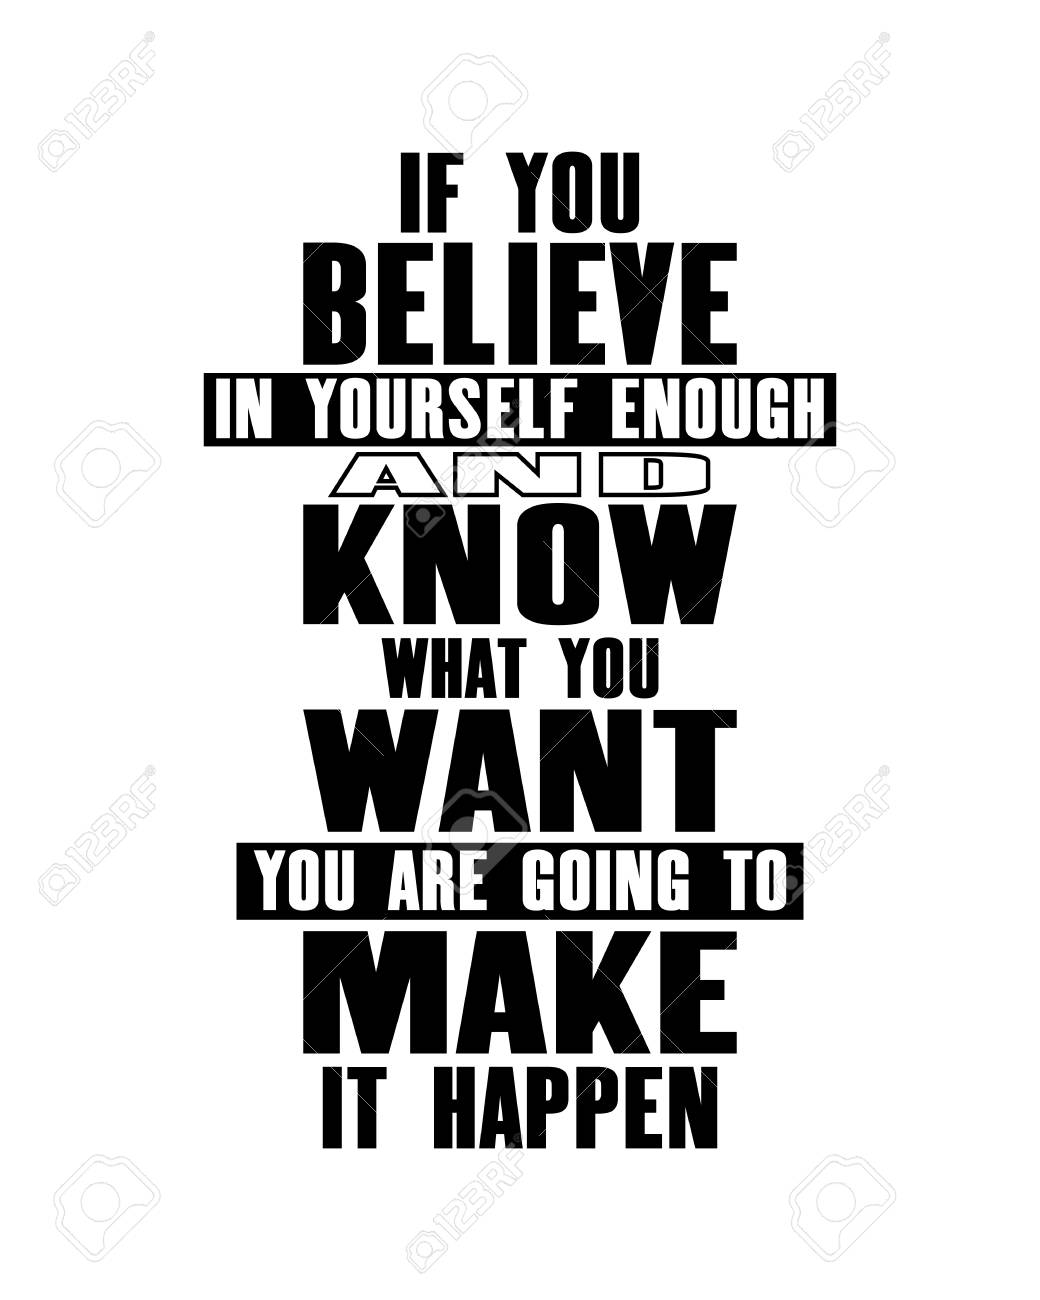 Inspiring Motivation Quote With Text If You Believe In Yourself Royalty Free Cliparts Vectors And Stock Illustration Image 103280045